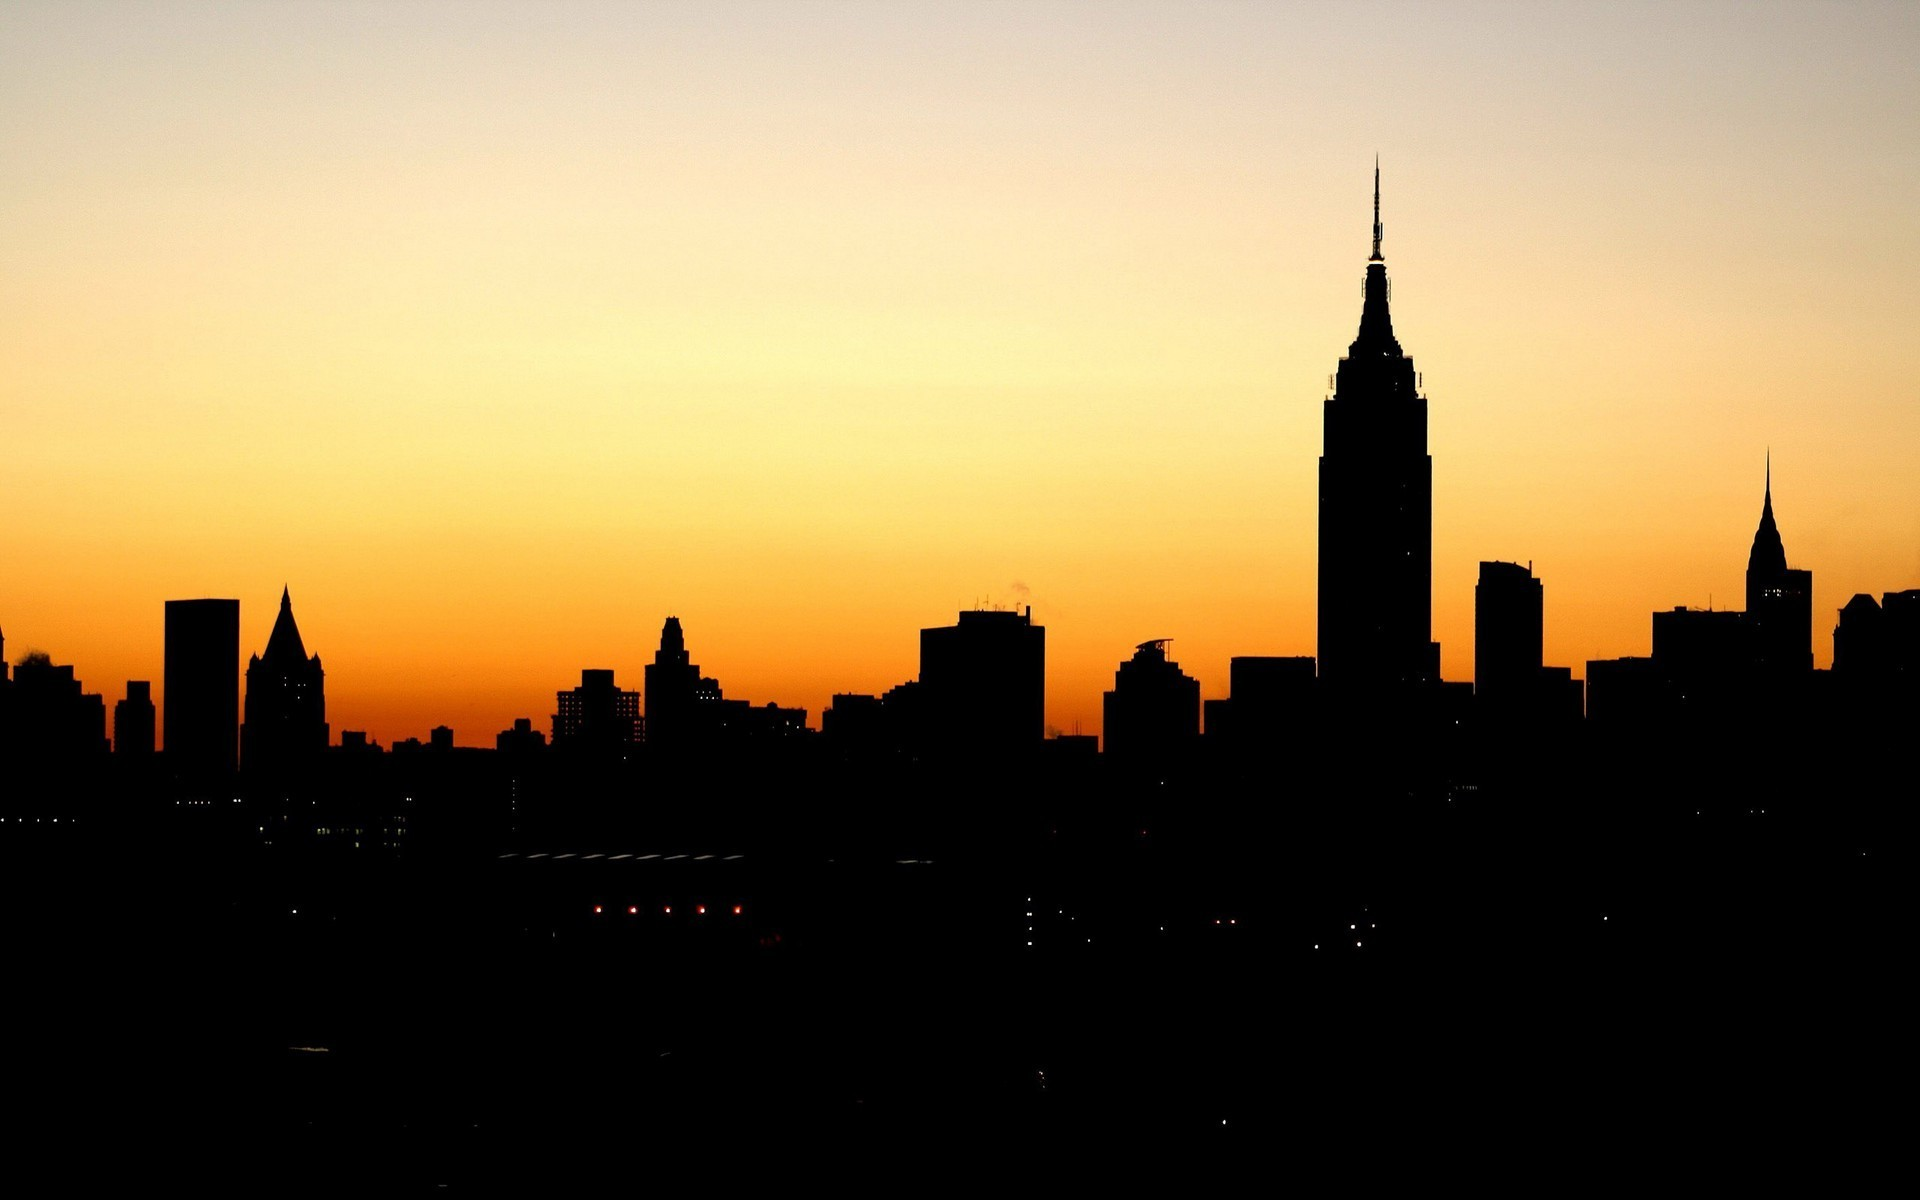 New York Silhouette at GetDrawings.com   Free for personal use New ...